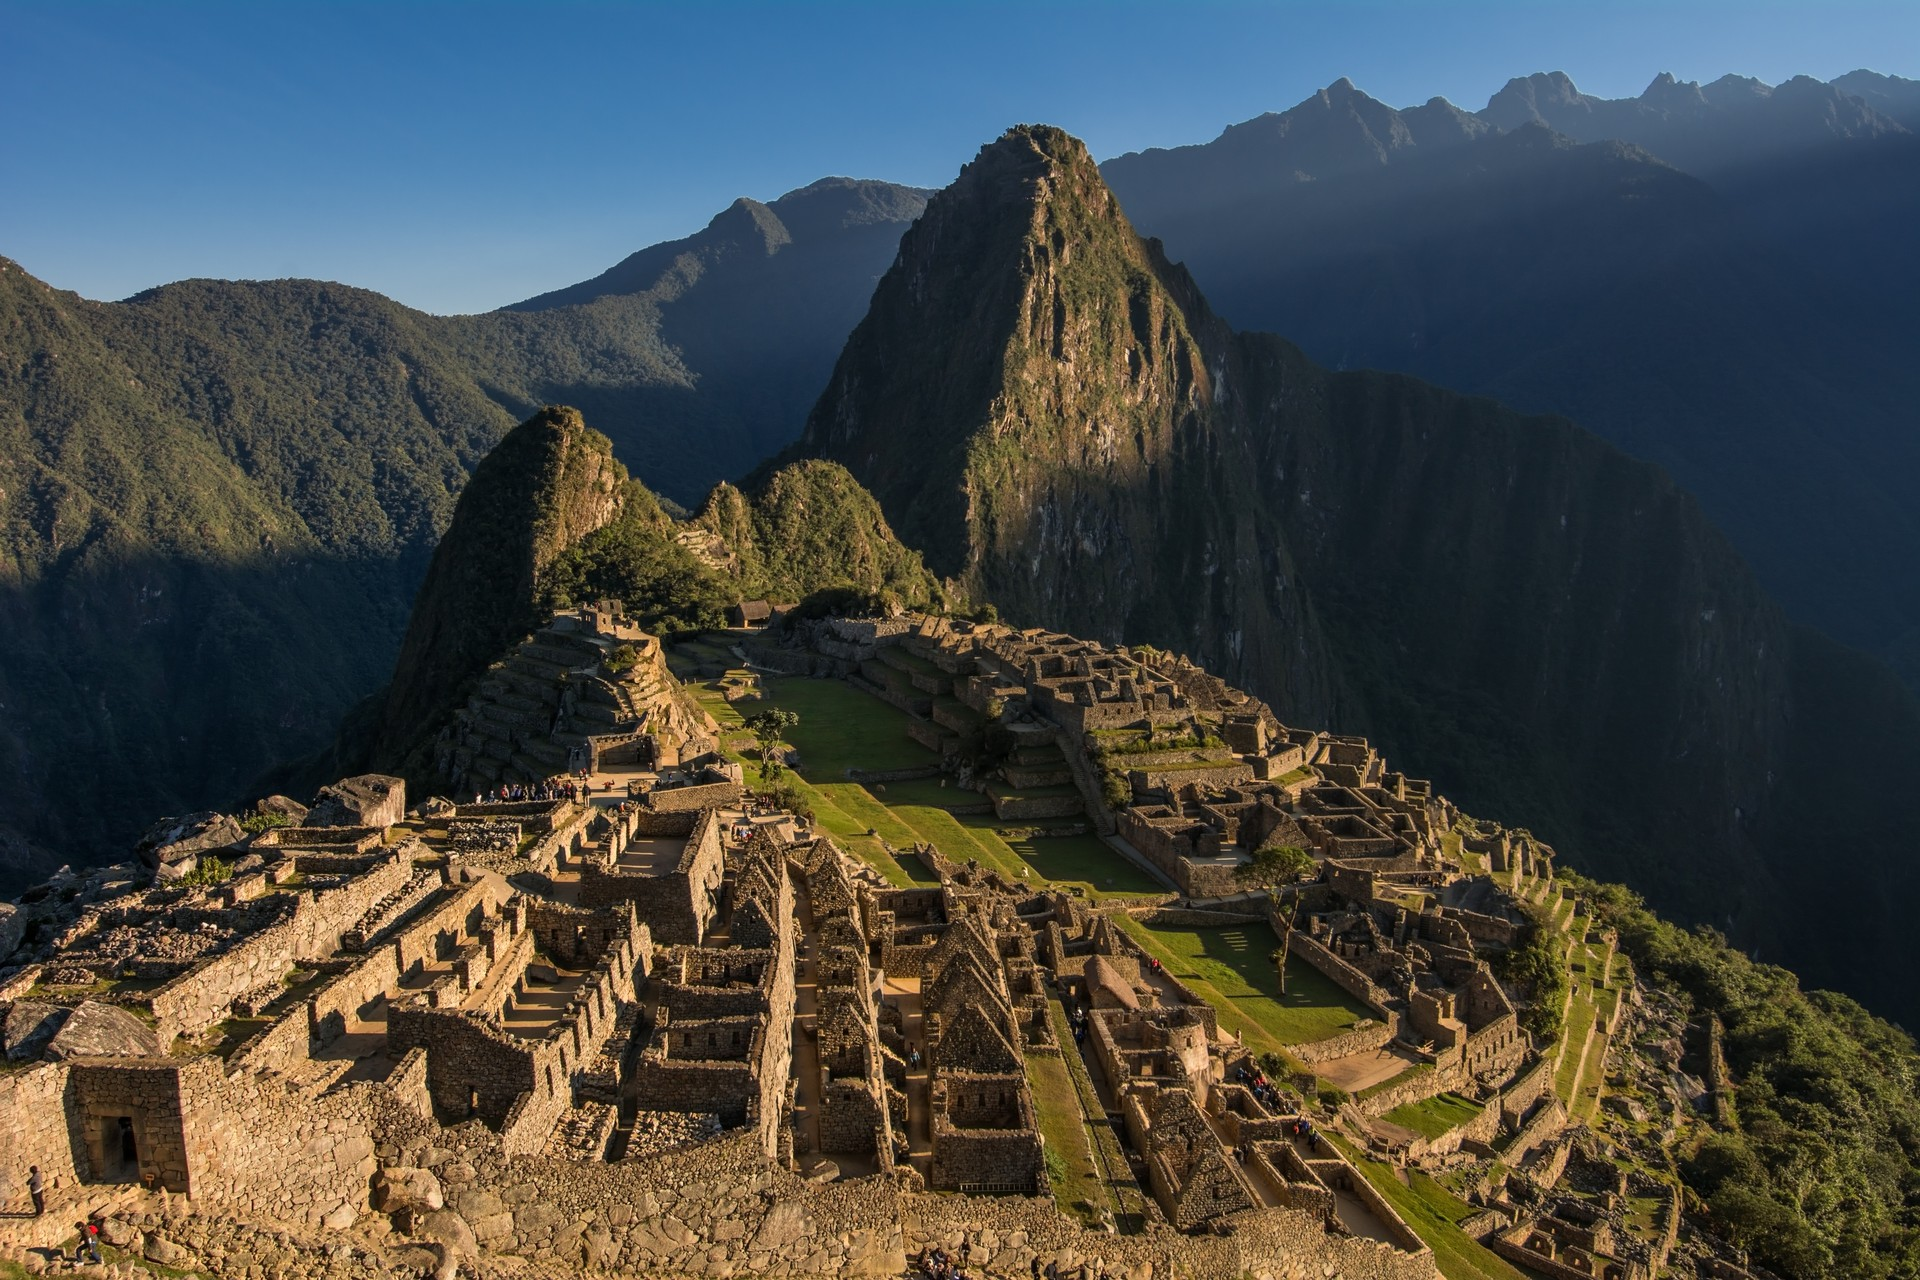 The Inca Trail is the iconic trek up to Machu Picchu in Peru